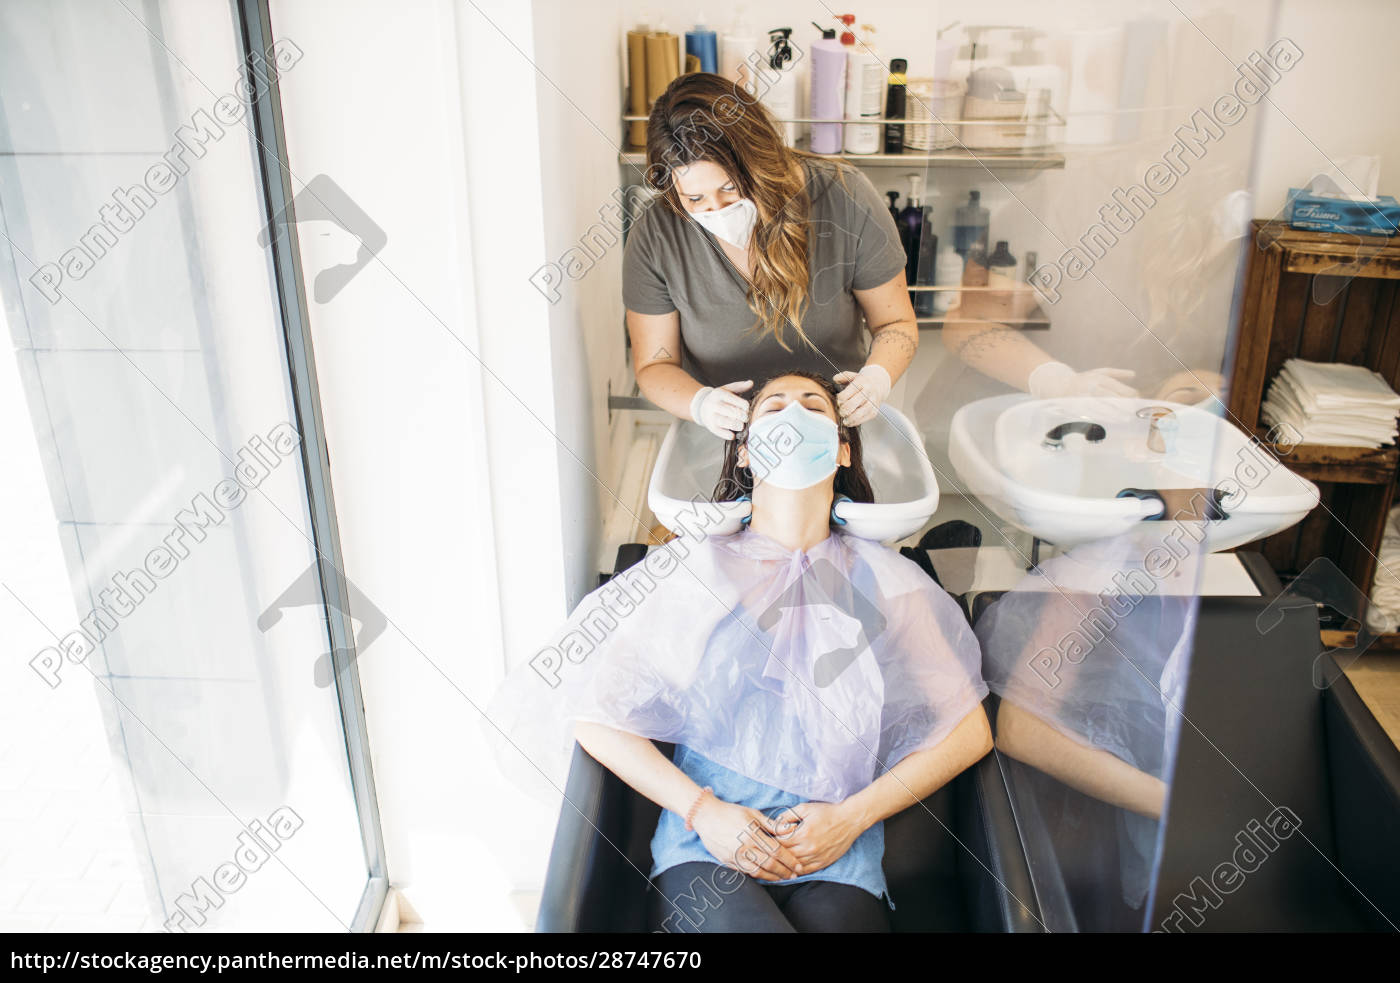 woman, with, mask, getting, hair, washed - 28747670